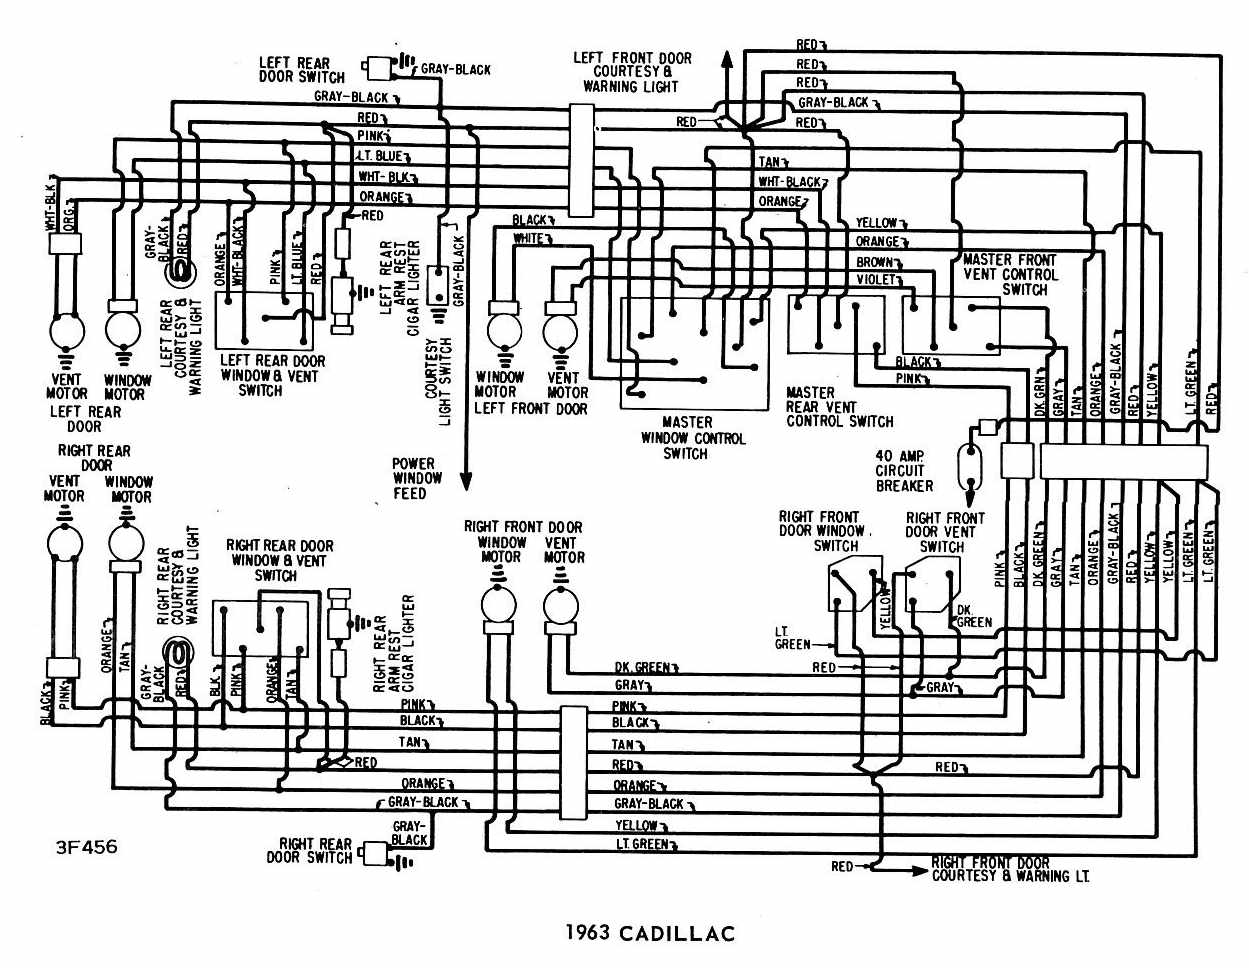 Cadillac 1963 Windows Wiring Diagram jaguar wiring diagram jaguar free wiring diagrams readingrat net  at nearapp.co